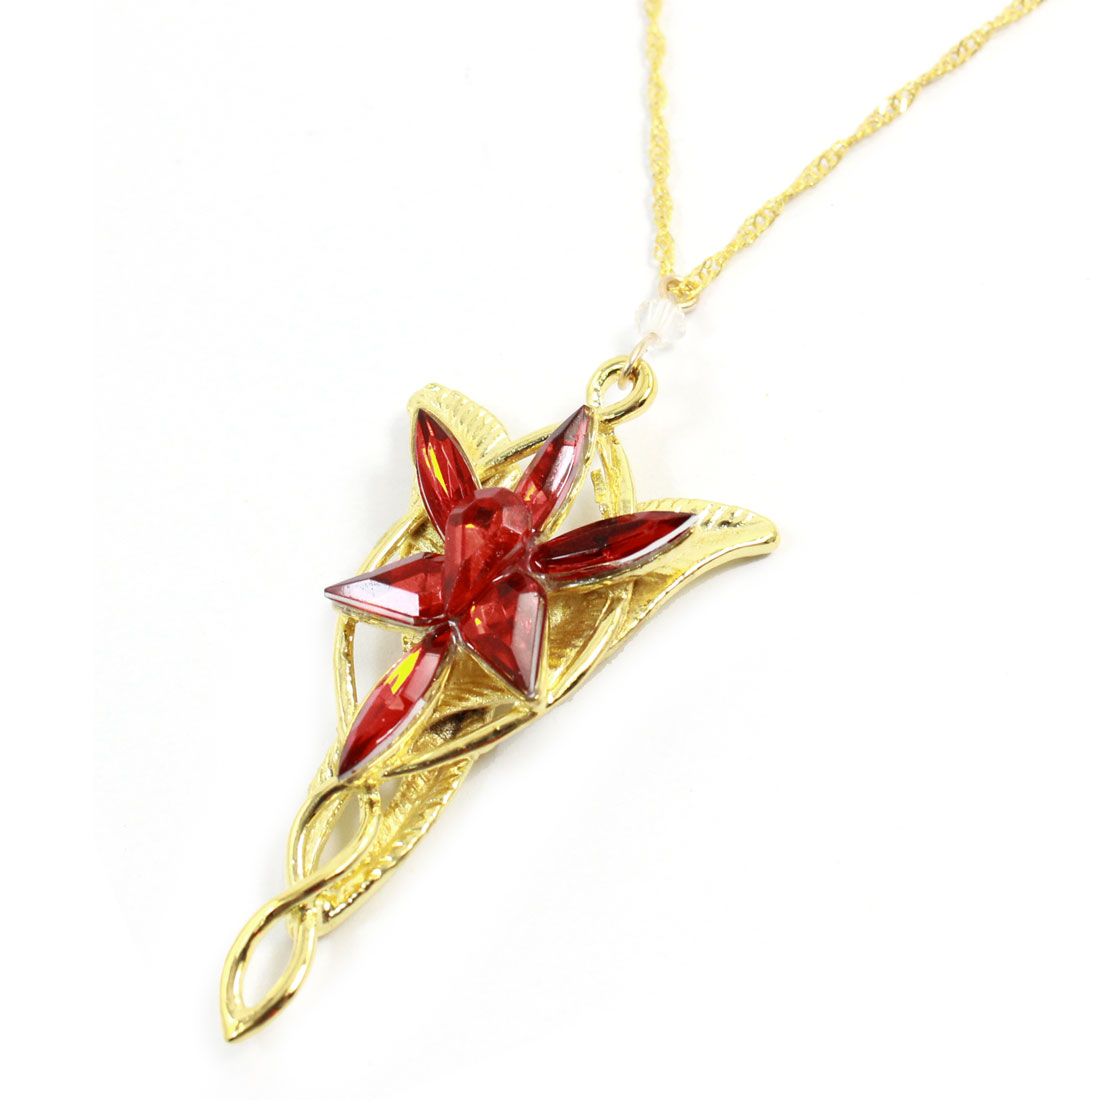 Floral Leaves Design Red Faux Crystal Pendant Metal Chain Necklace Gold Tone